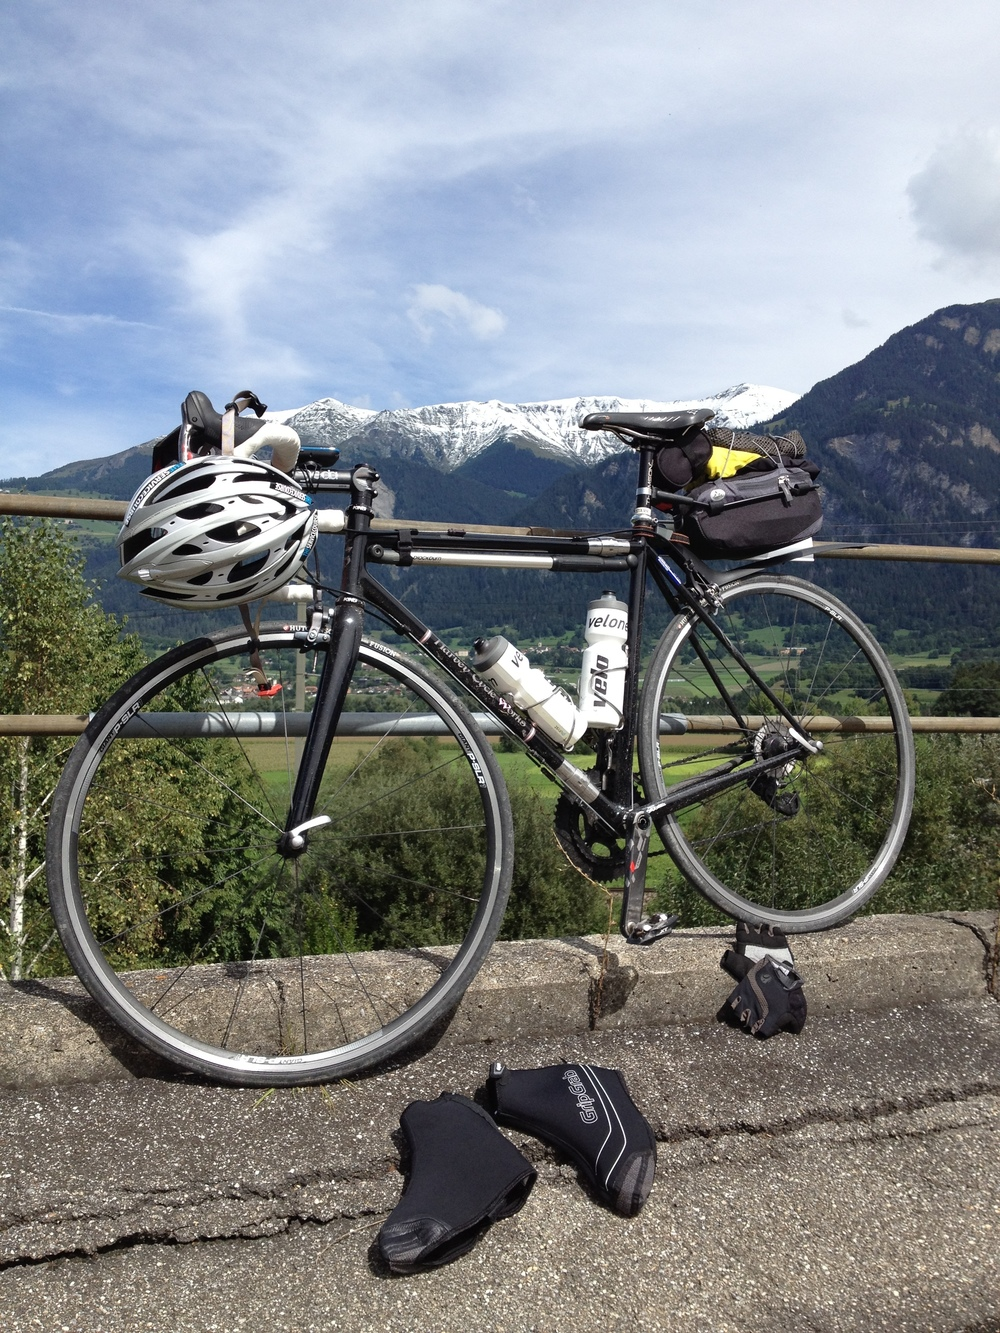 Drying out after a rainy day in Germany and Switzerland. Rode with Lennard Zinn and Morgan Nicol from Eurobike in Friedrichshafen, Germany to Lugano, Switzerland over the course of a few days.